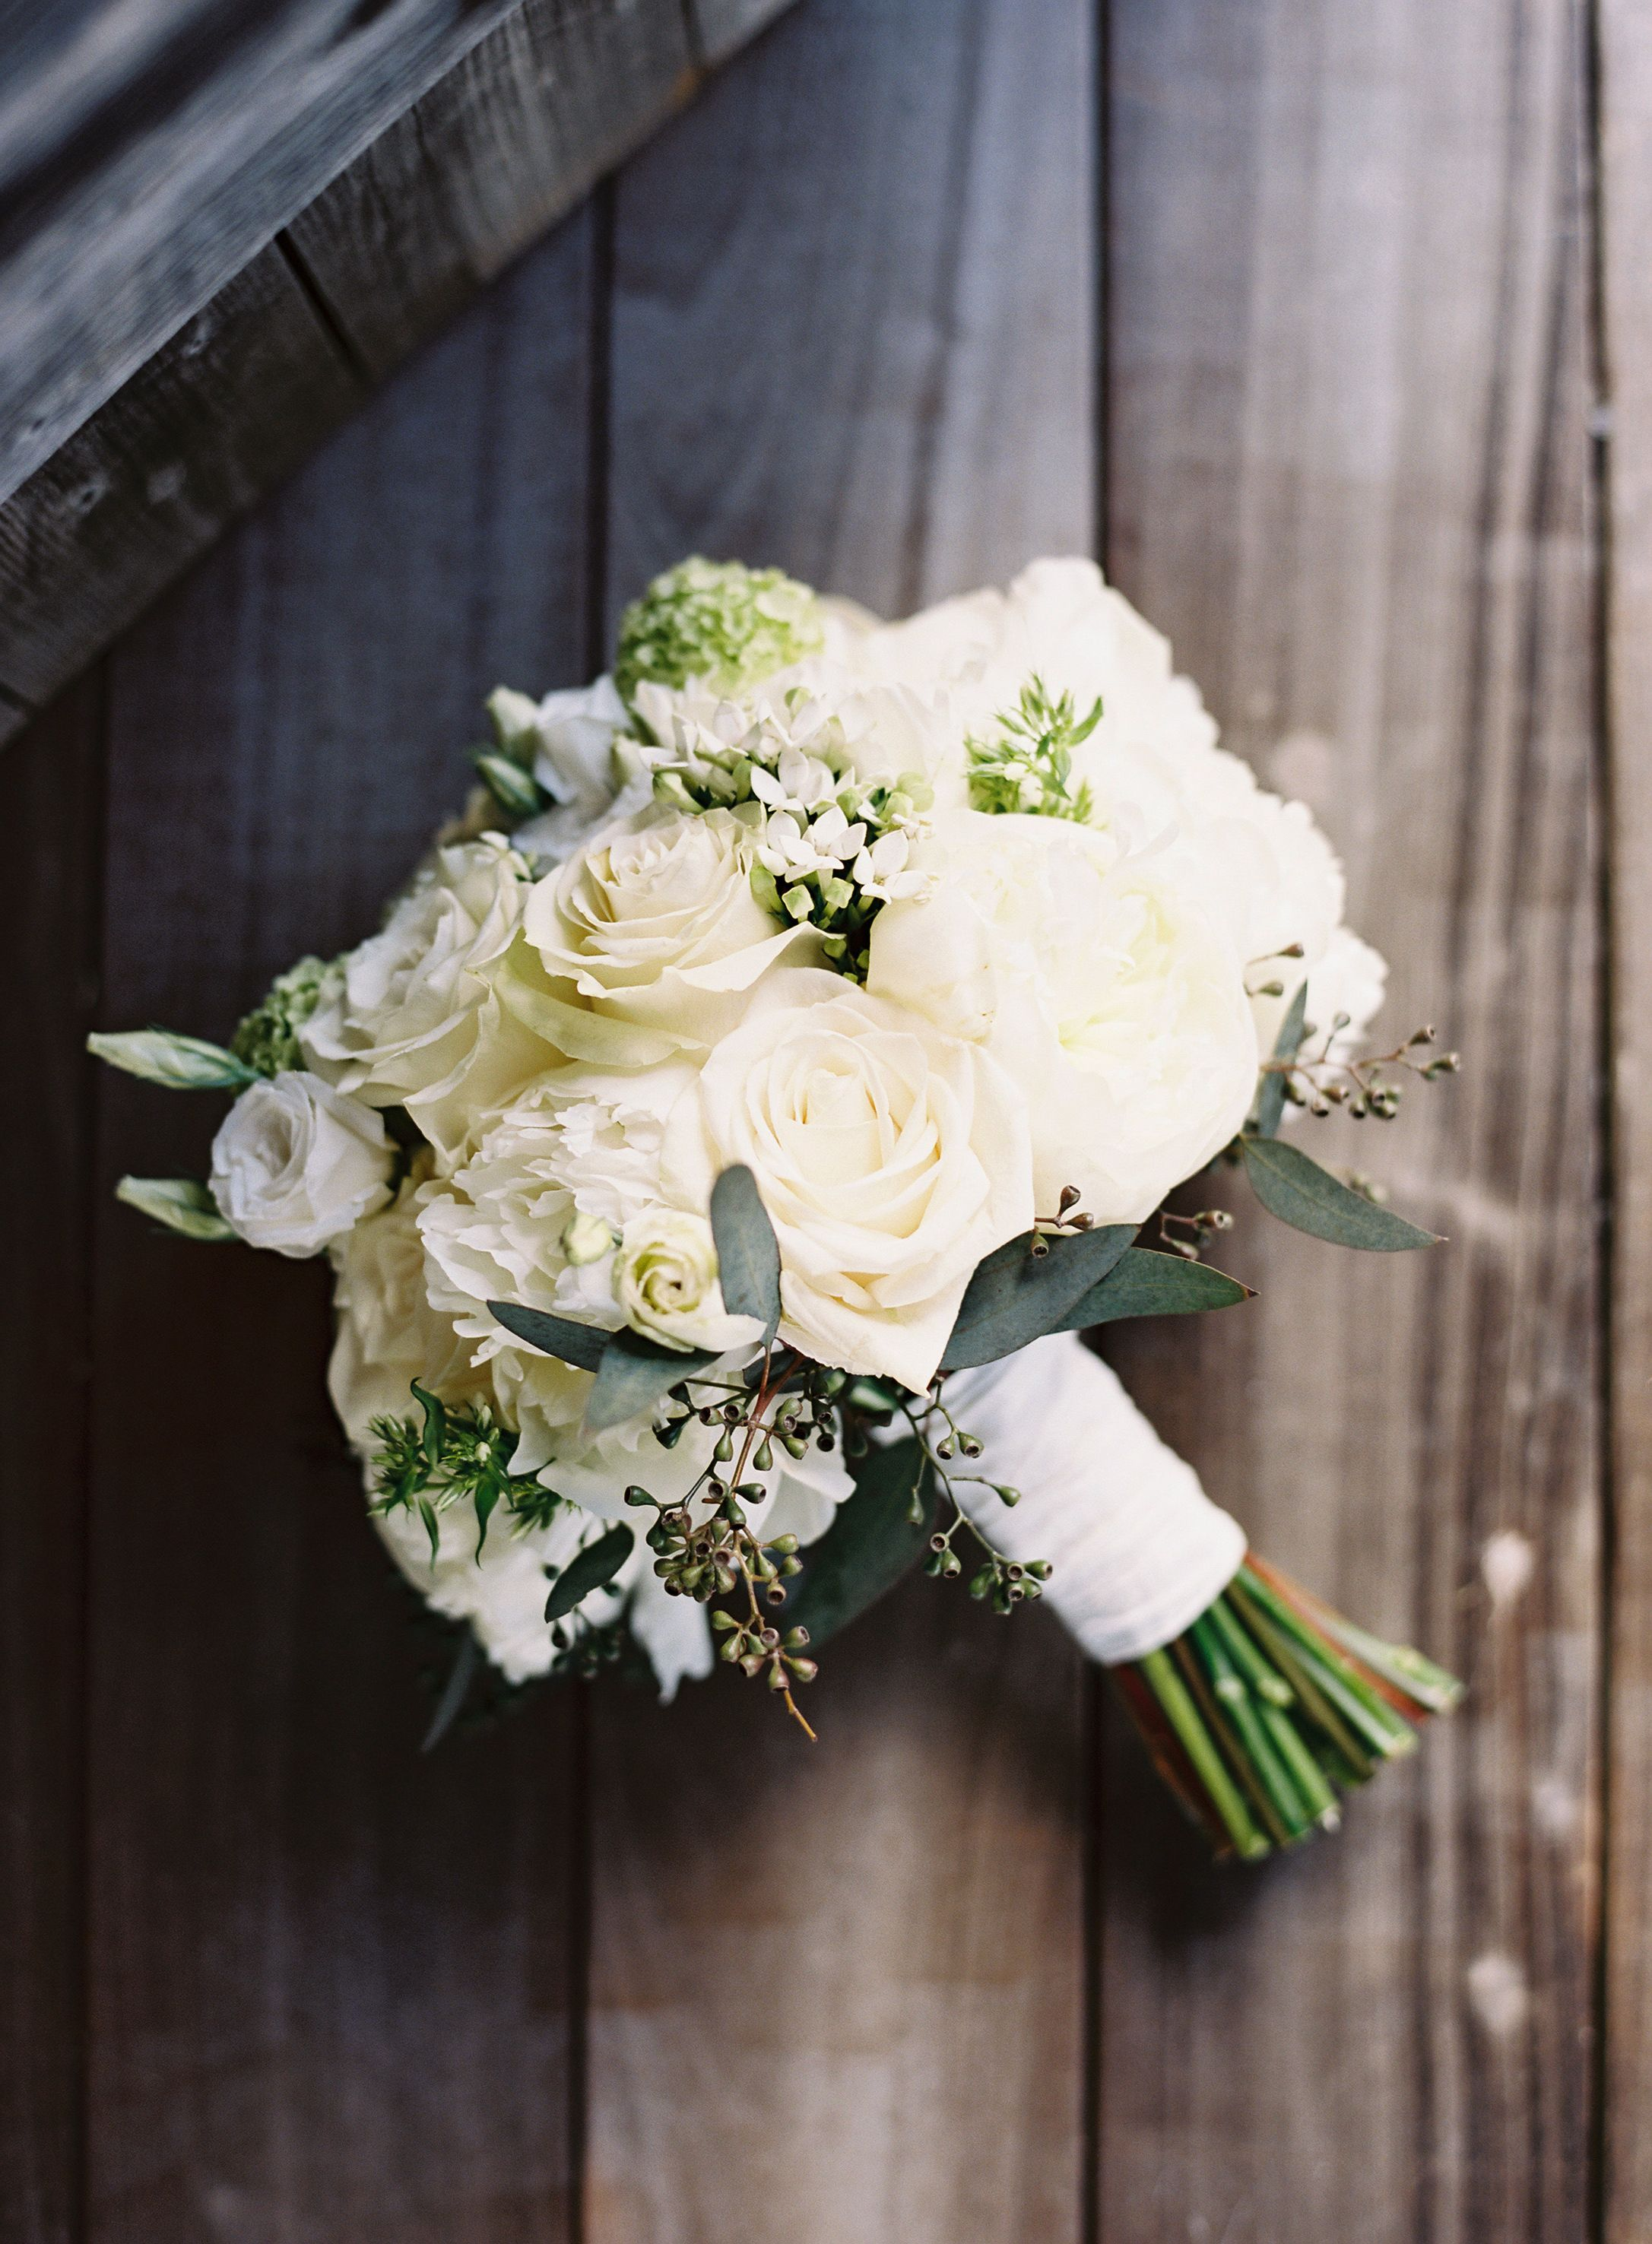 whites, creams and greens make a stunning, ribbon-wrapped bouquet as featured on style me pretty #thecampateseeolalodge #campyonahnoka | calder clark© | @clarkbrewer | @stylemepretty | @blossomsevents